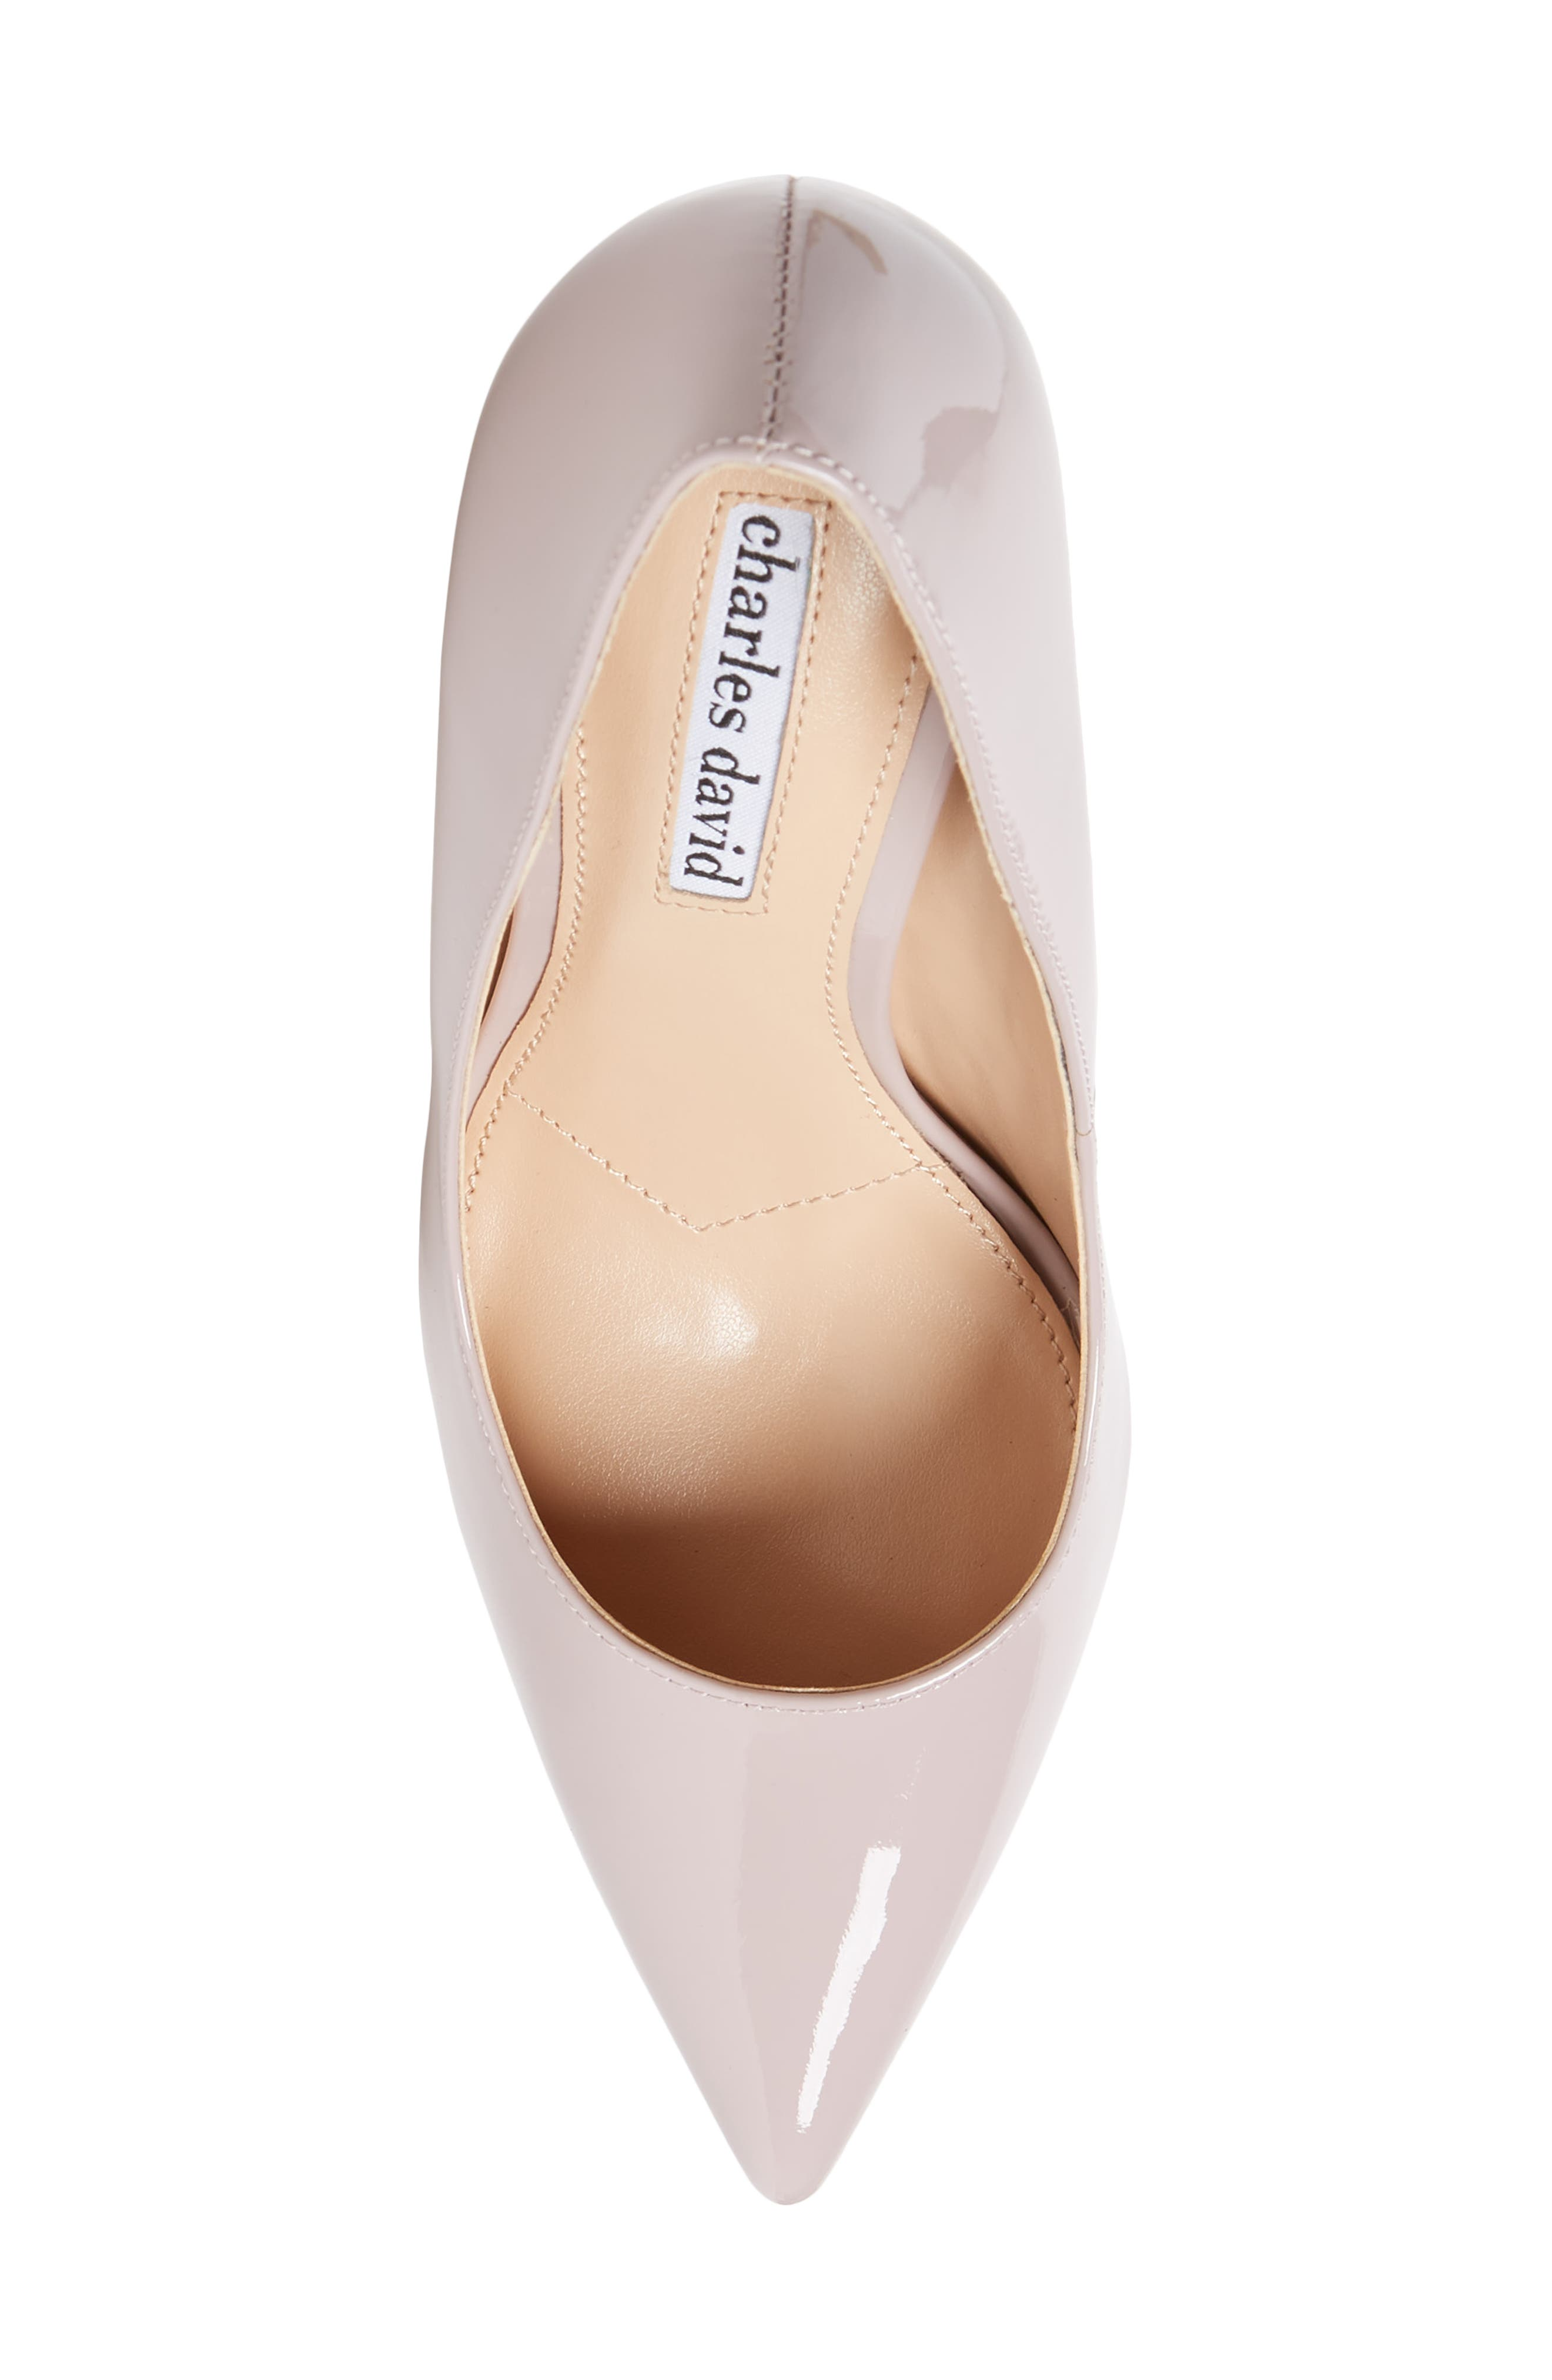 Calessi Pointy Toe Pump,                             Alternate thumbnail 5, color,                             LAVENDER PATENT LEATHER